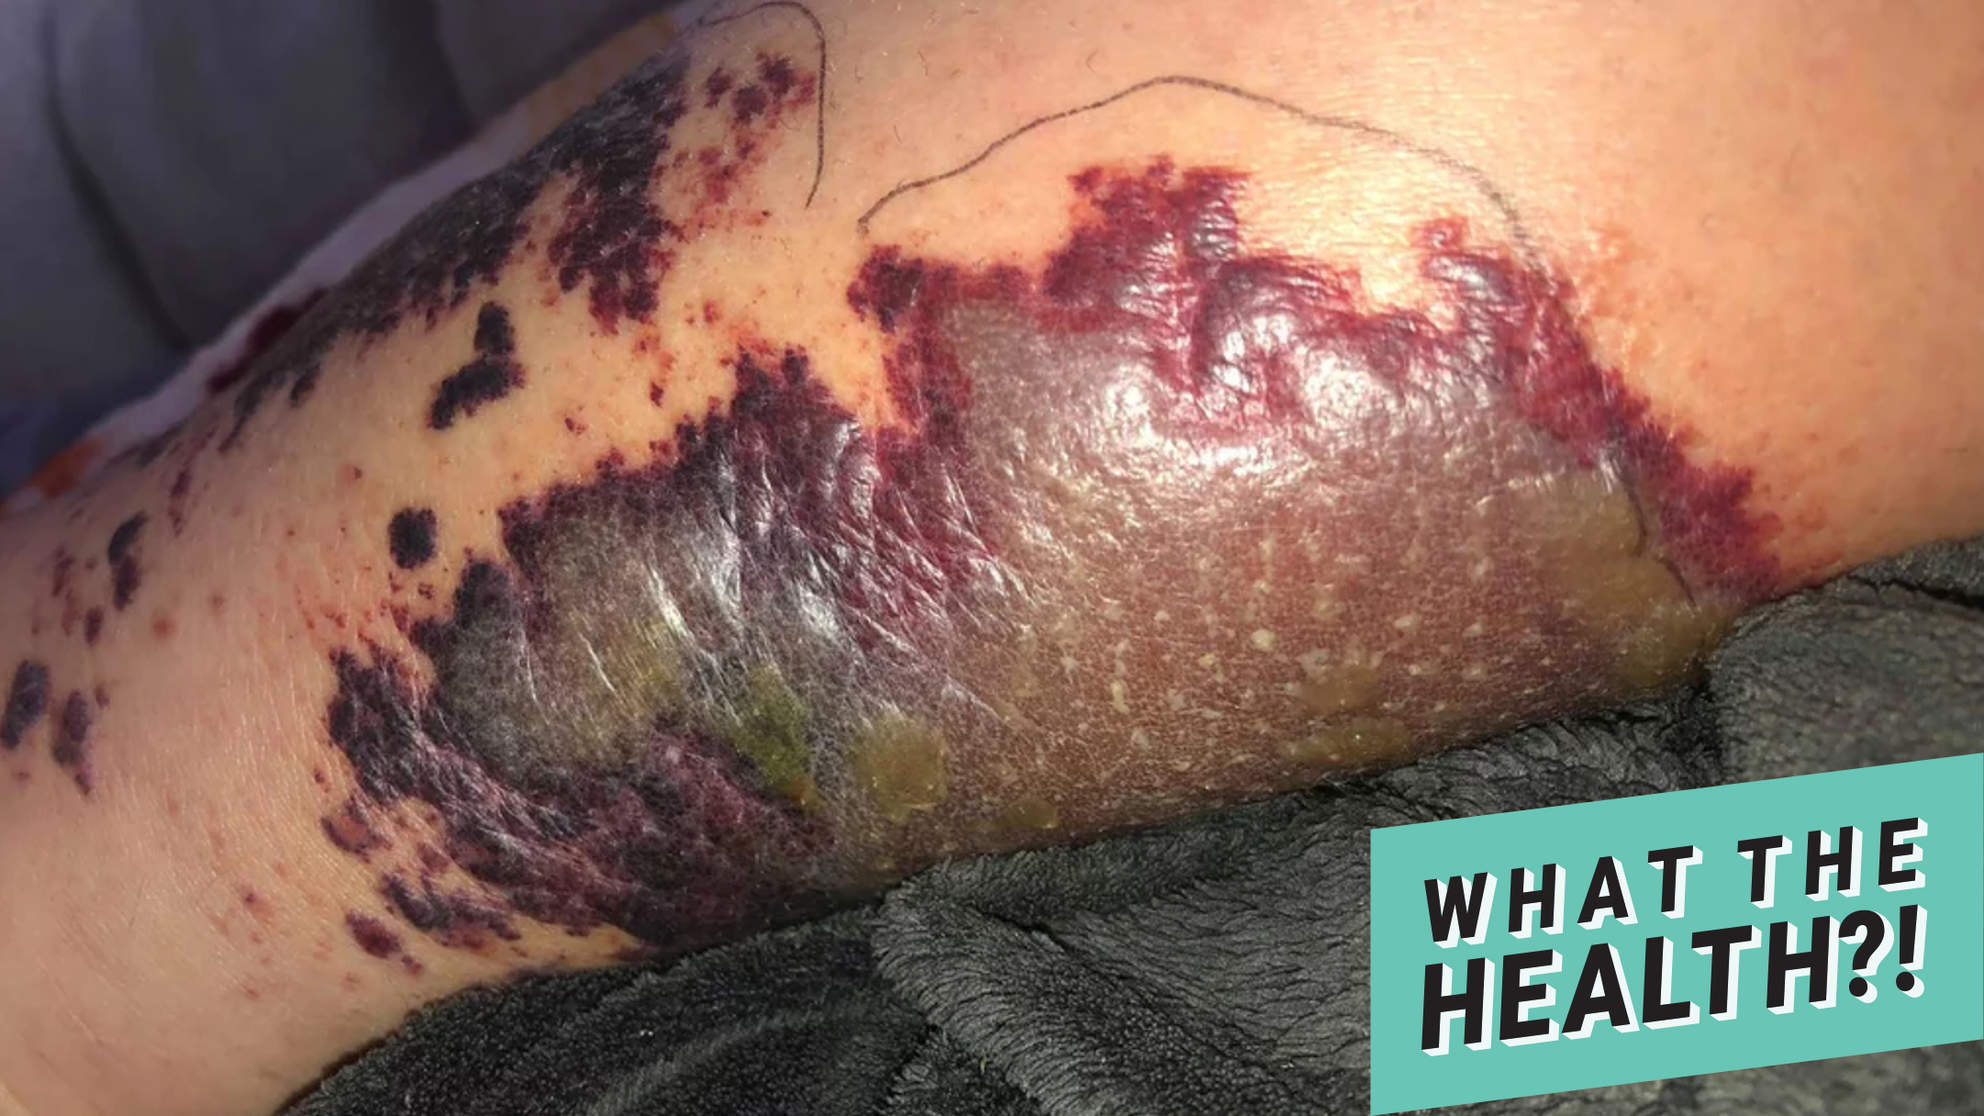 A Hot Tub Infection Caused A 26-Year-Old Woman to Almost Lose Her Leg